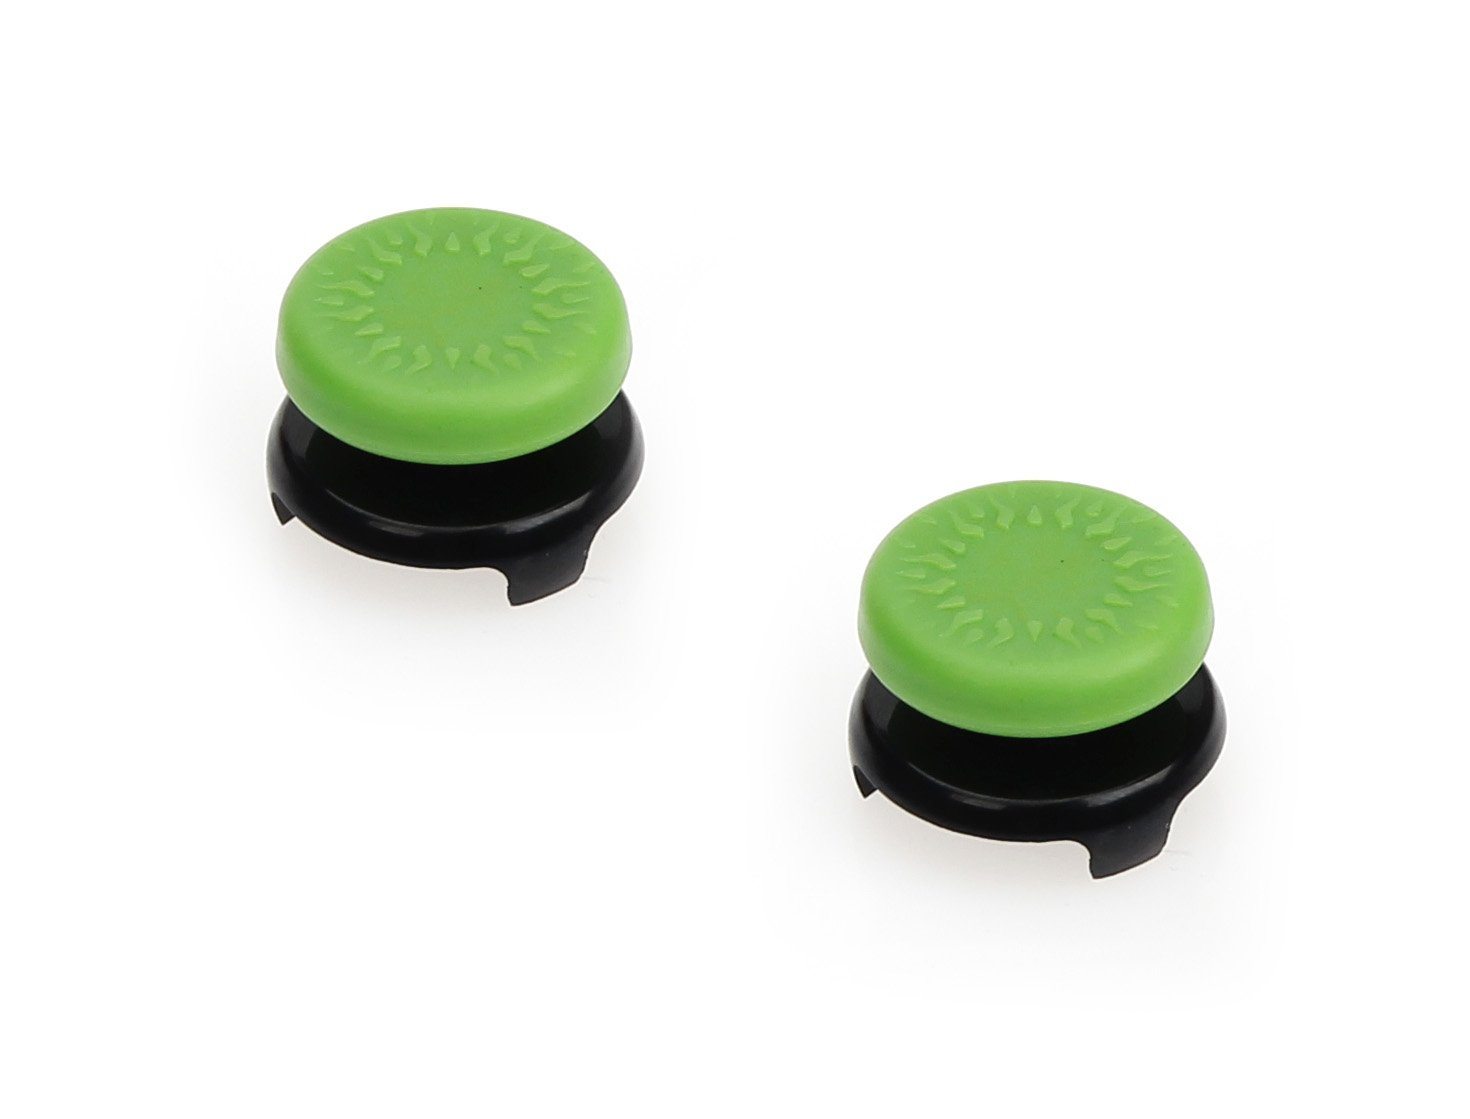 DHgateBasics Xbox One Controller Thumb Grips - Pack of 2, Green